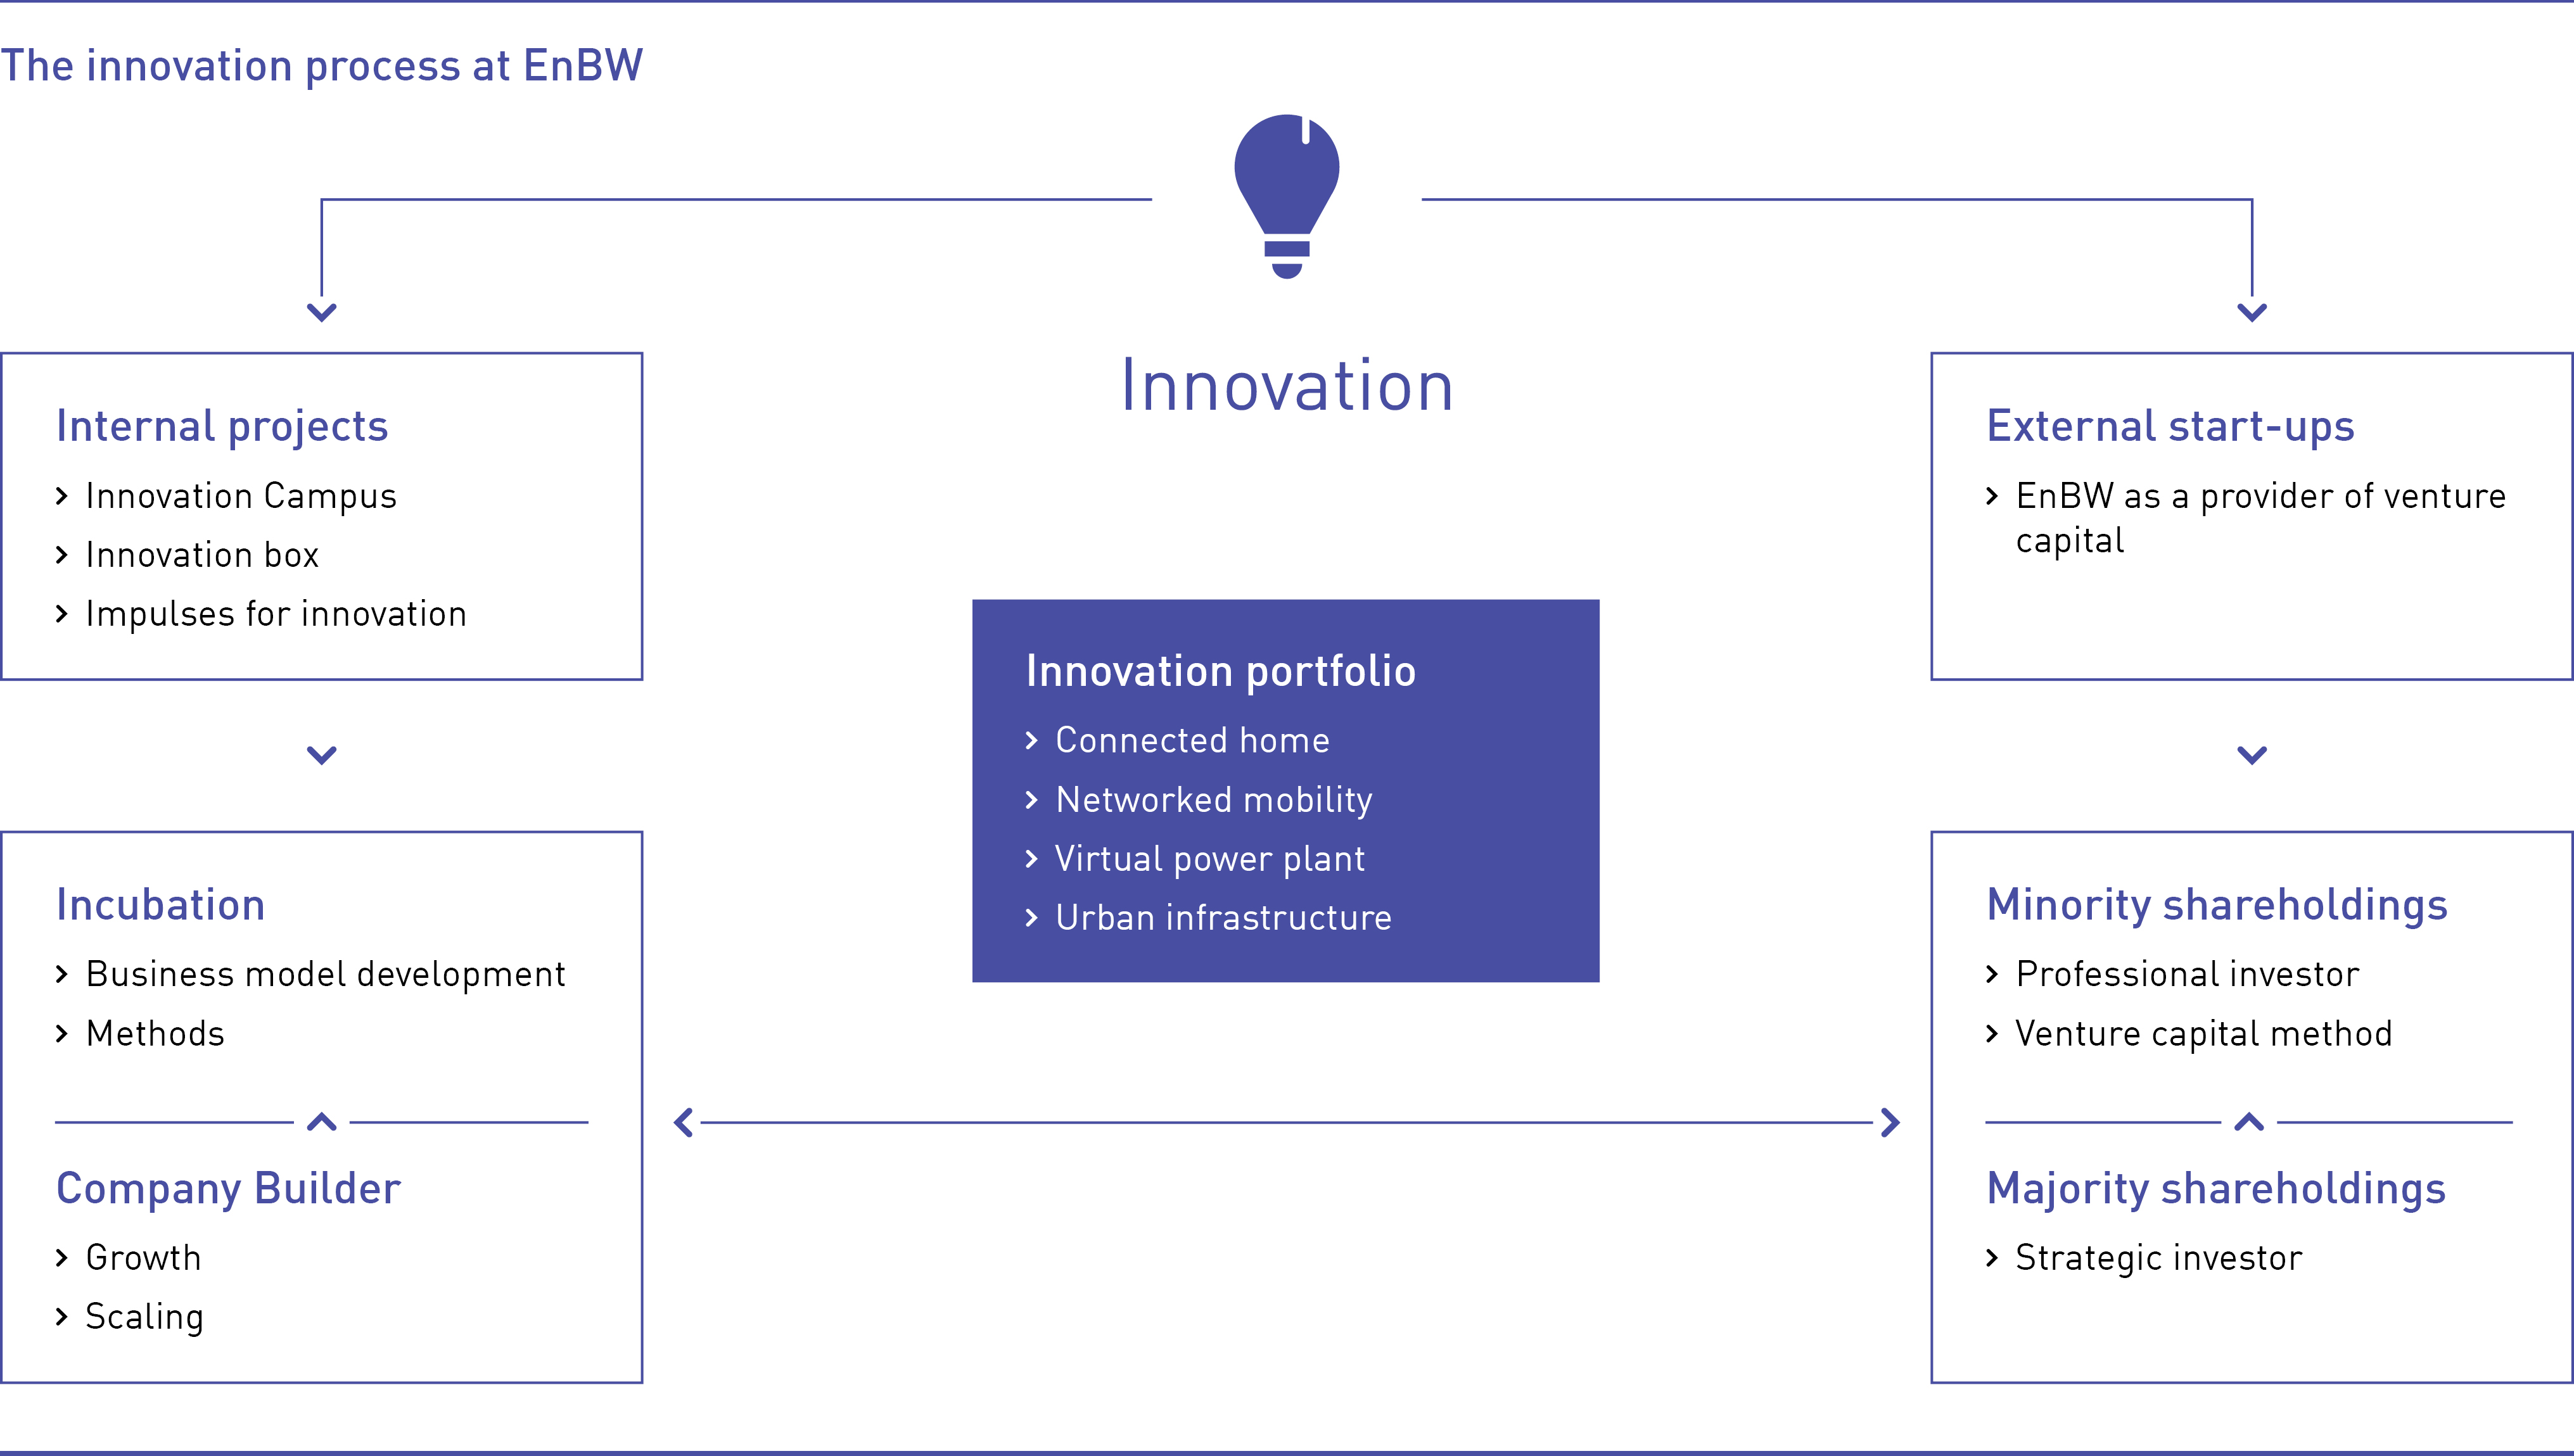 The innovation process at EnBW